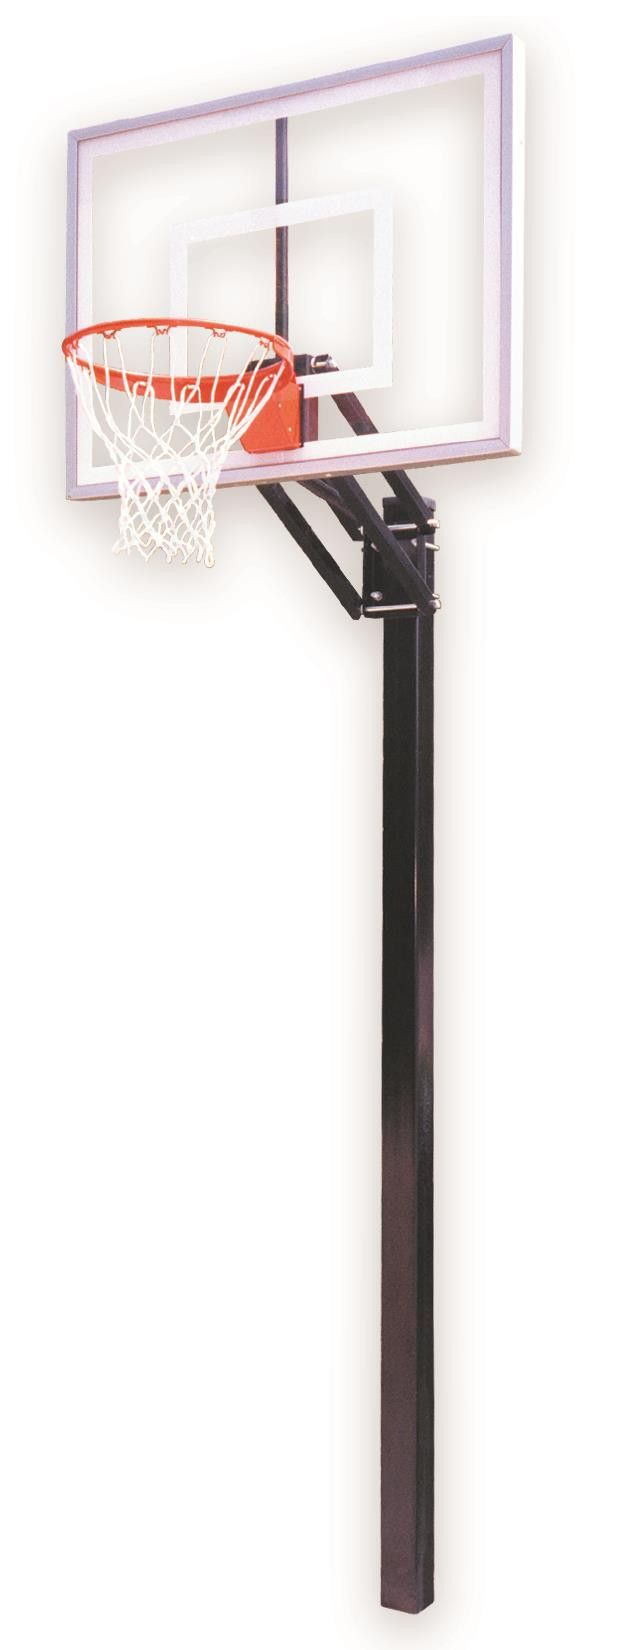 First Team Champ II In Ground Outdoor Adjustable Basketball Hoop 48 inch Acrylic from NJ Swingsets